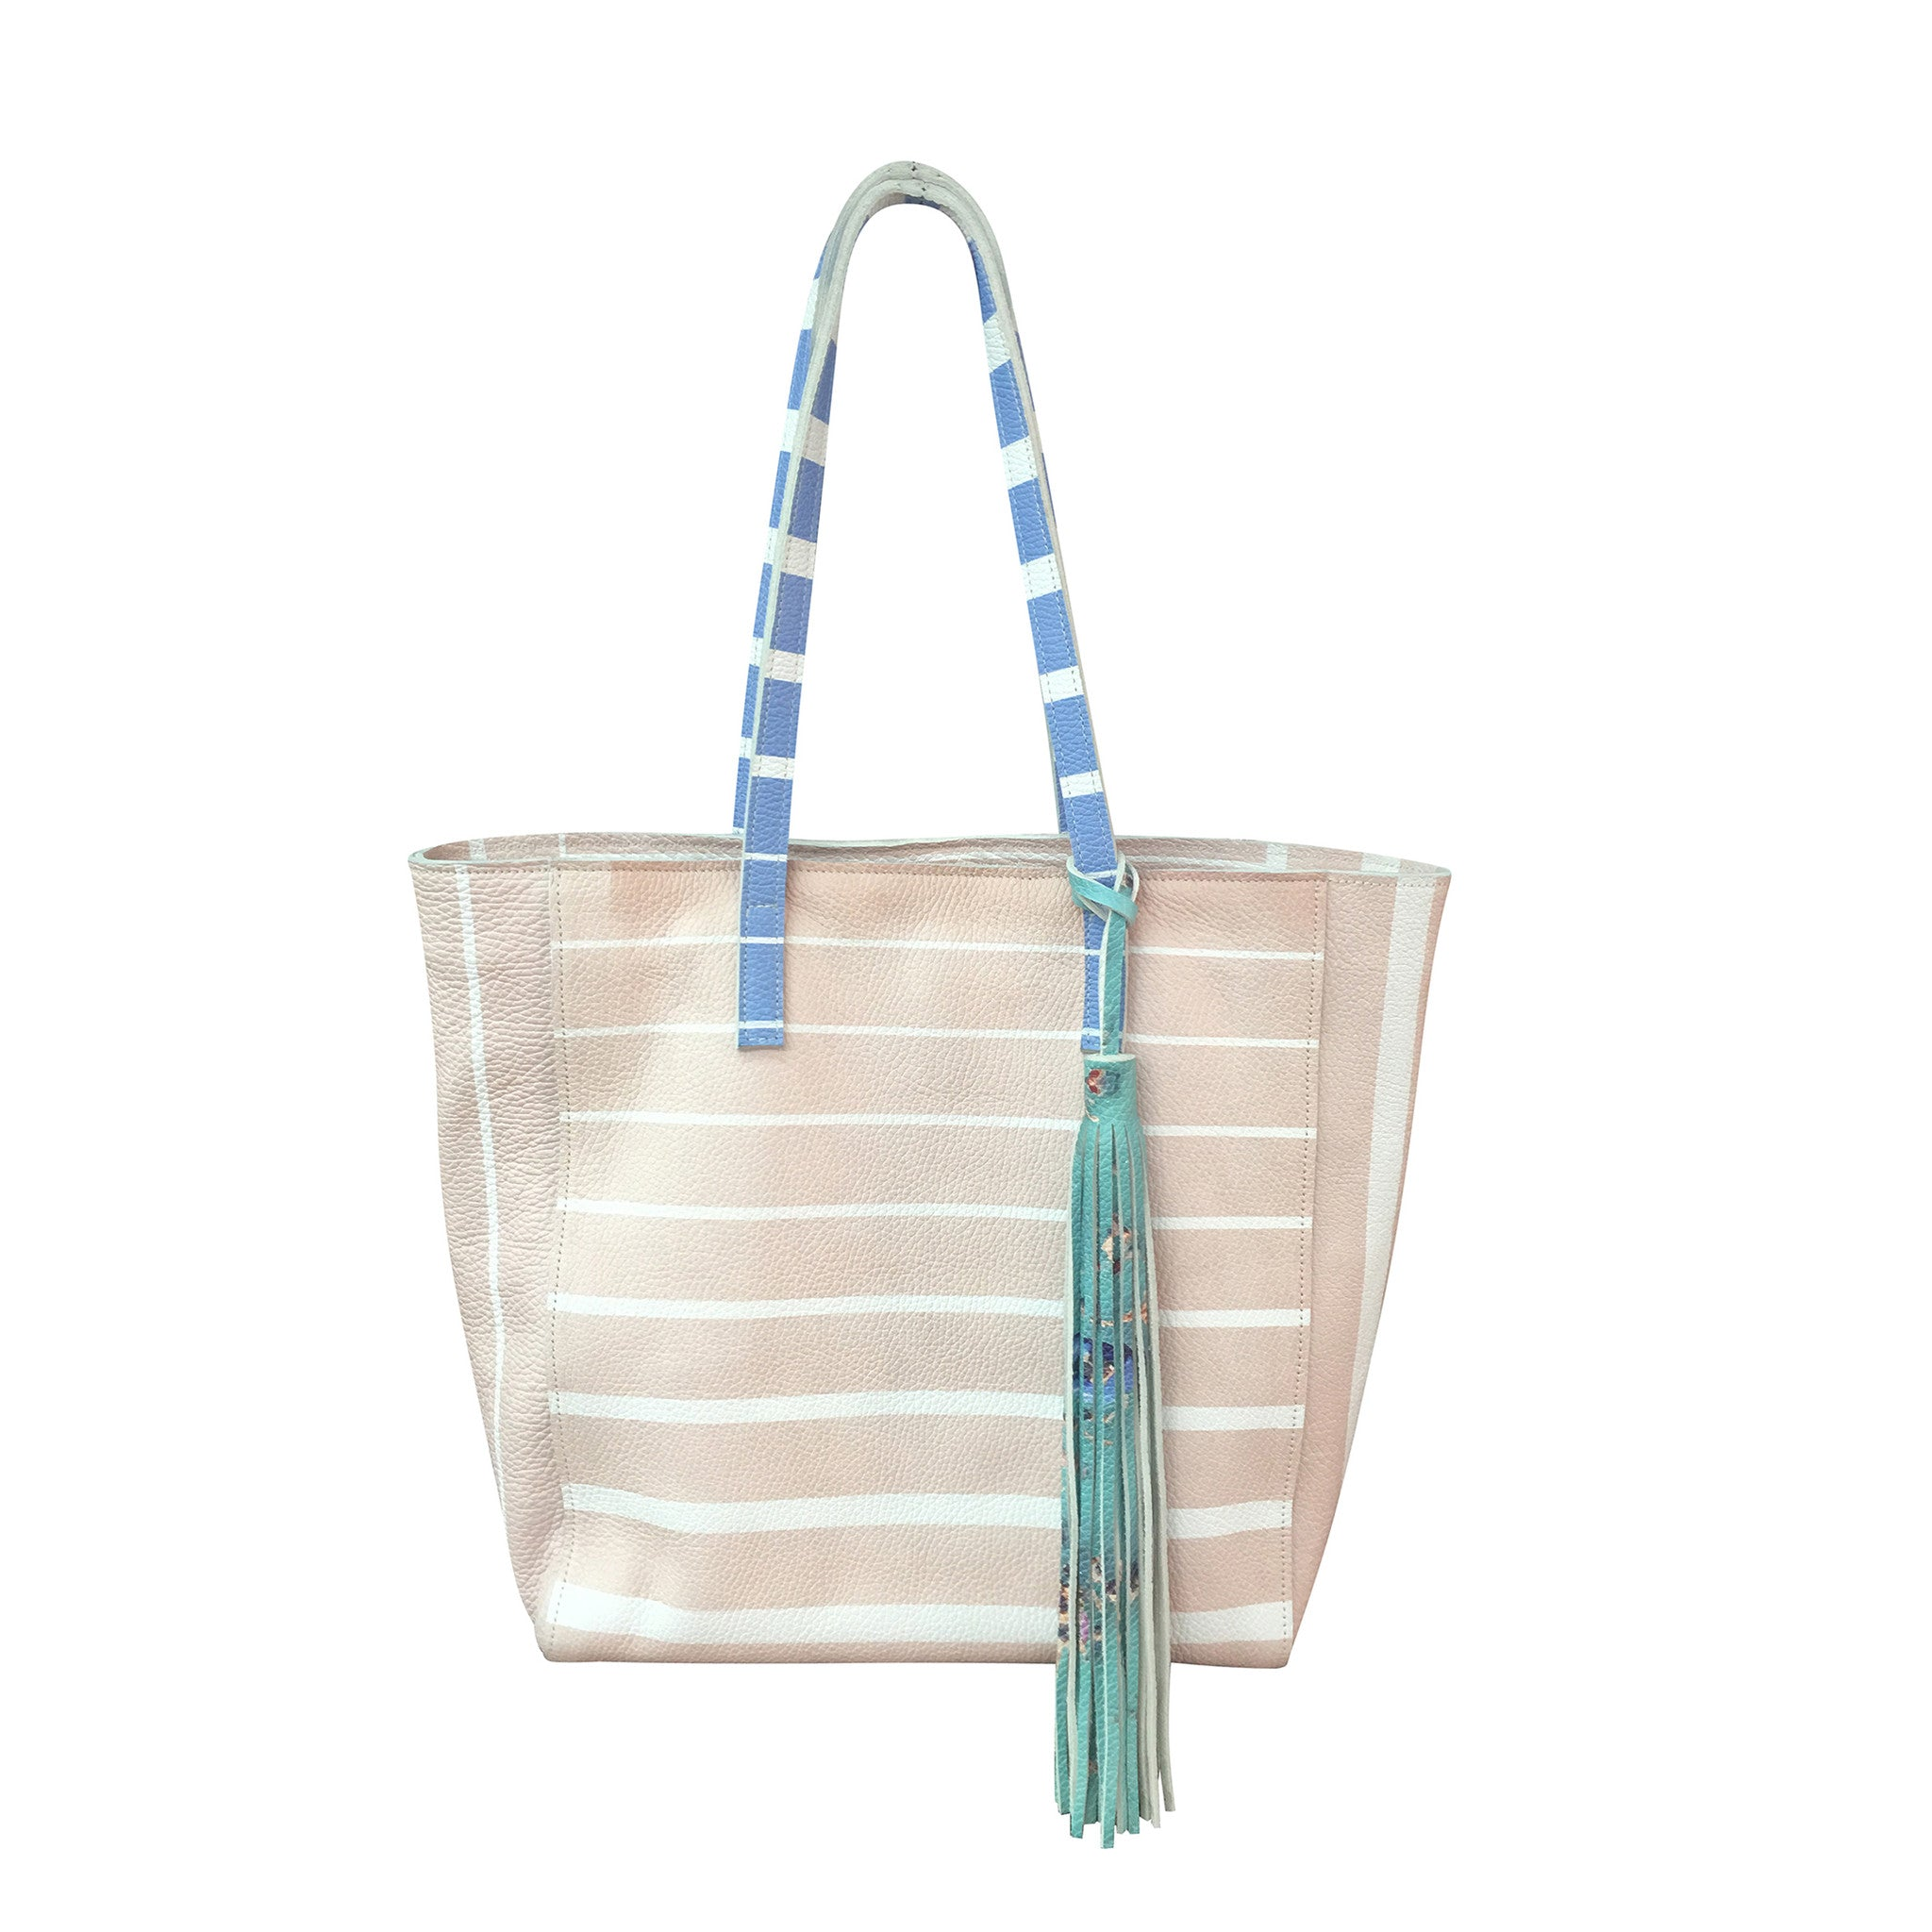 The Pink Stripes Tall Tote